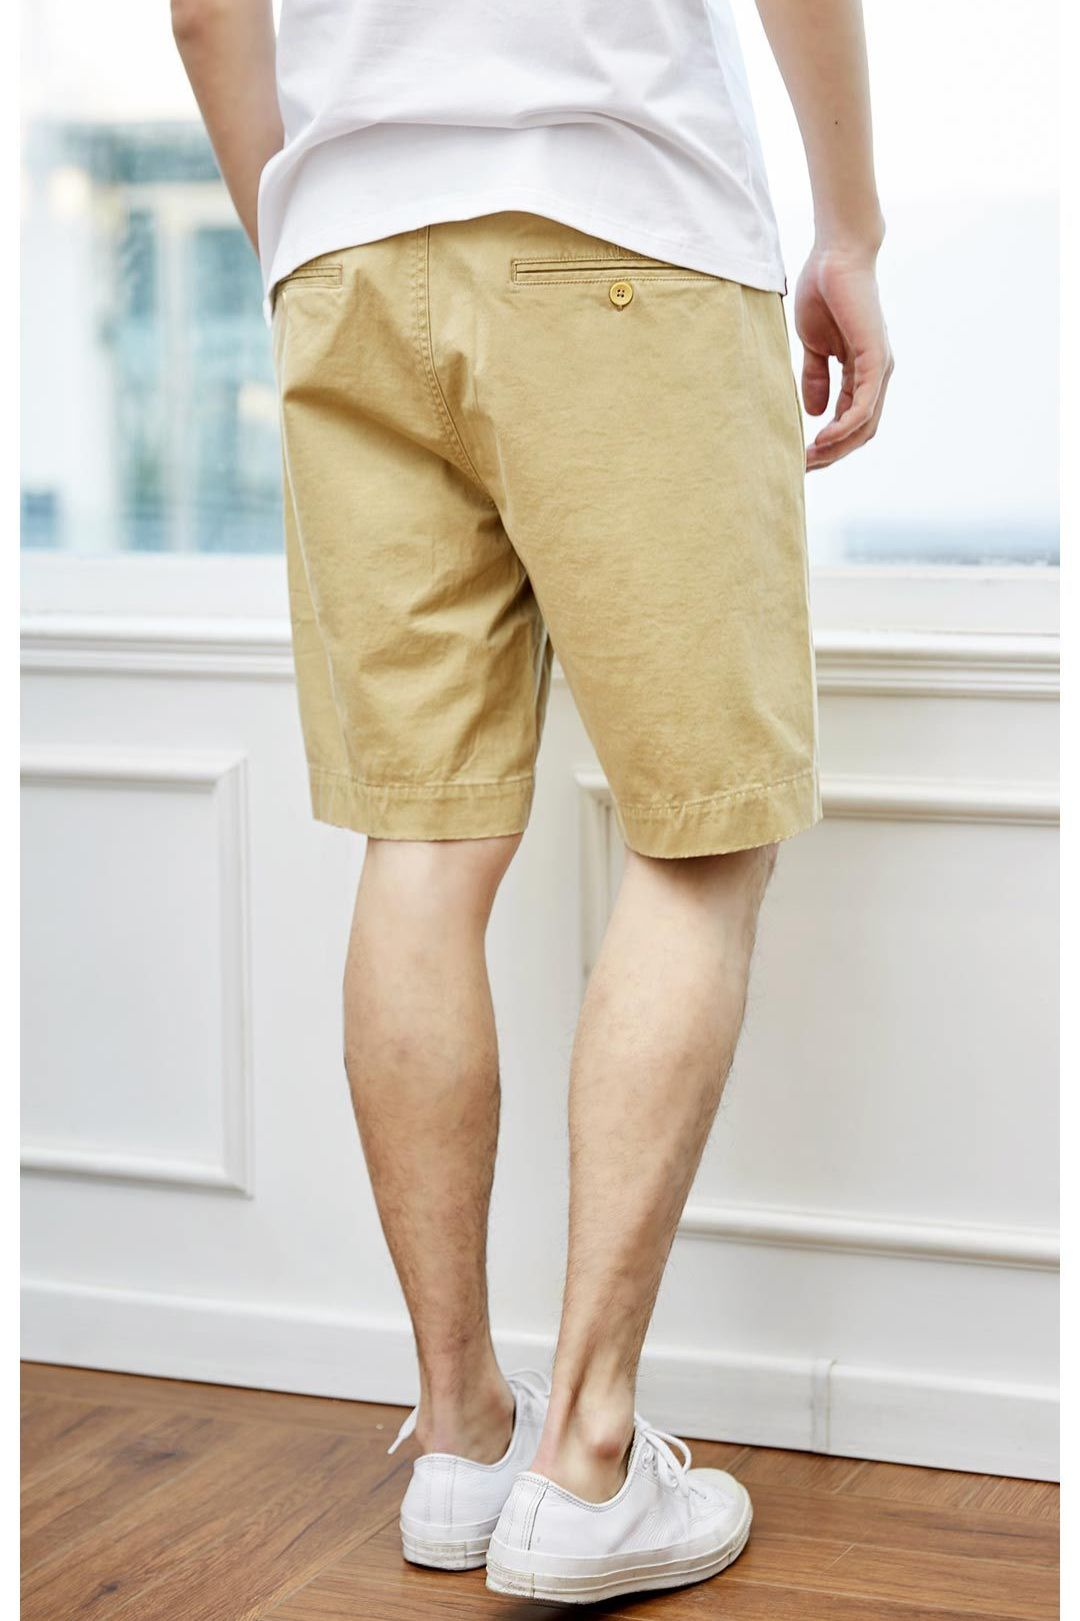 MITOWN-Urban-casual-shorts-Beige